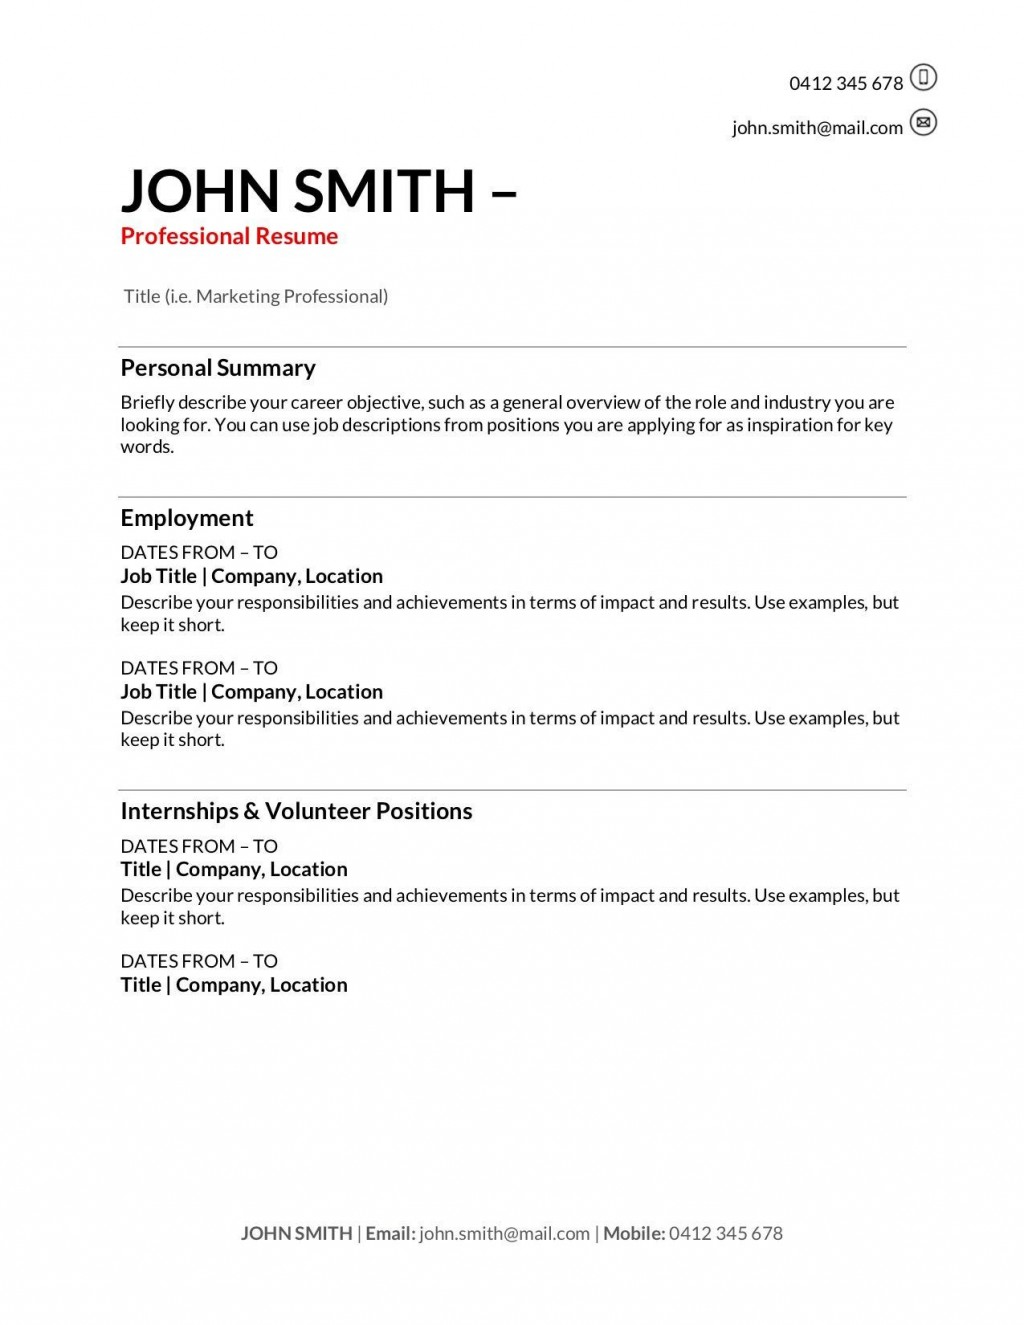 010 Fantastic Professional Resume Template Free Download Word High Definition  Cv 2020 Format With PhotoLarge